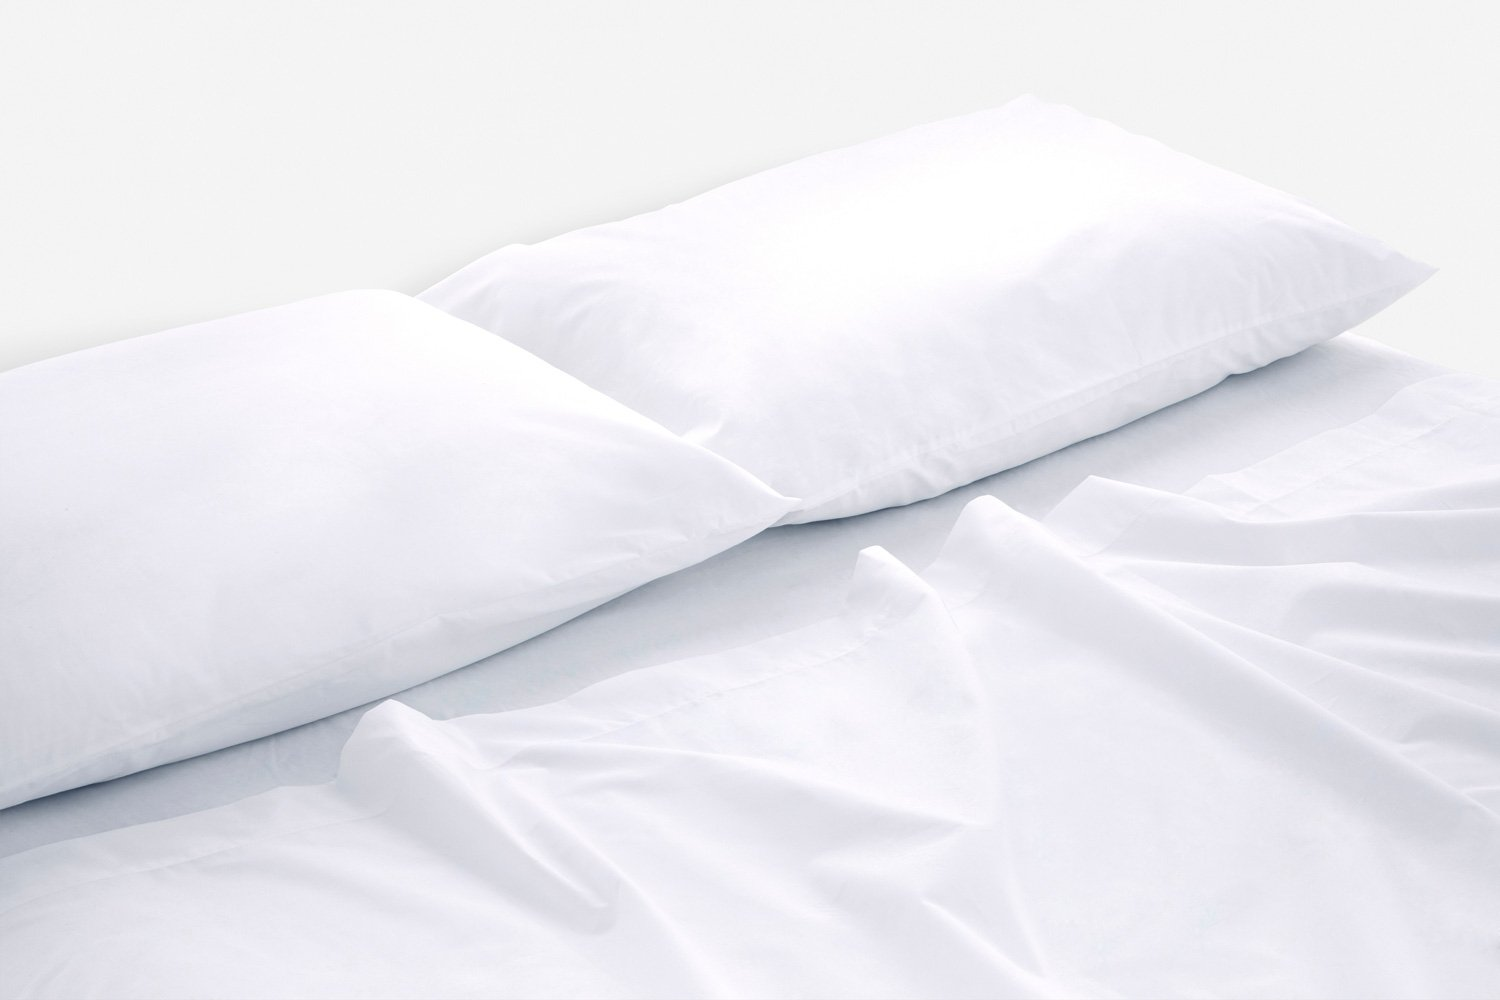 cotton percale sheeting in white colour